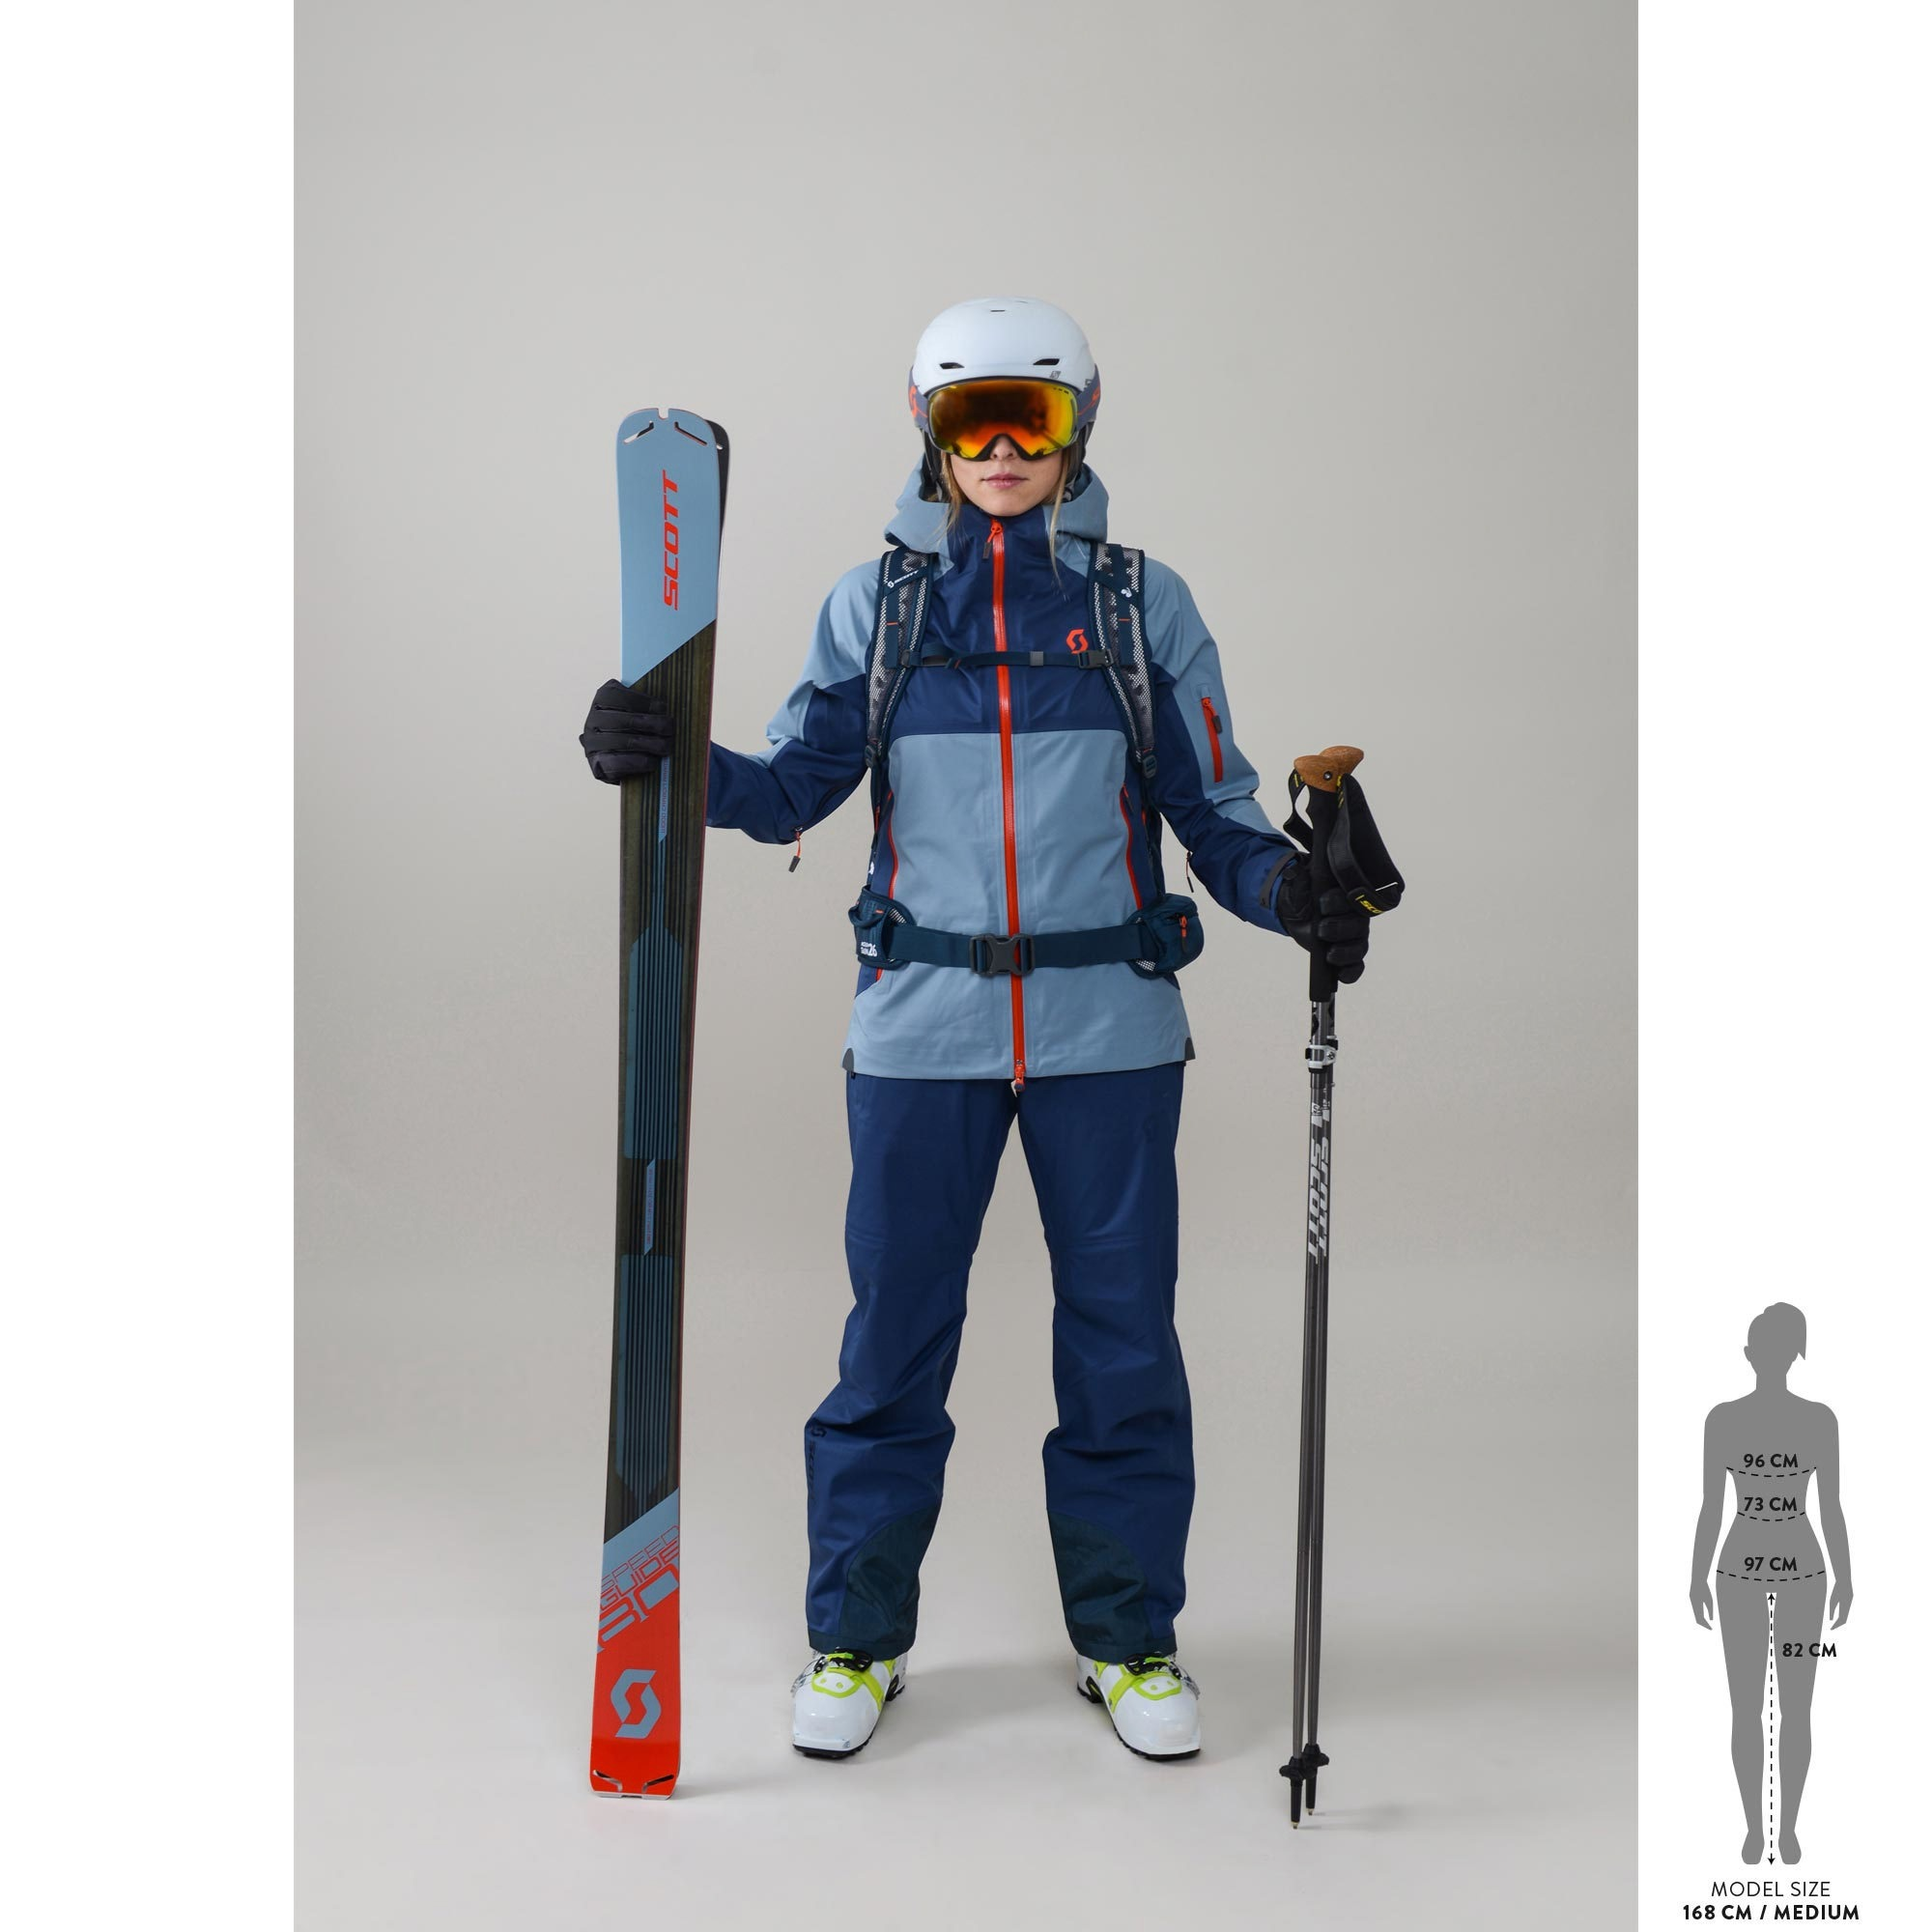 SCOTT Speedguide 80 Ski für Damen